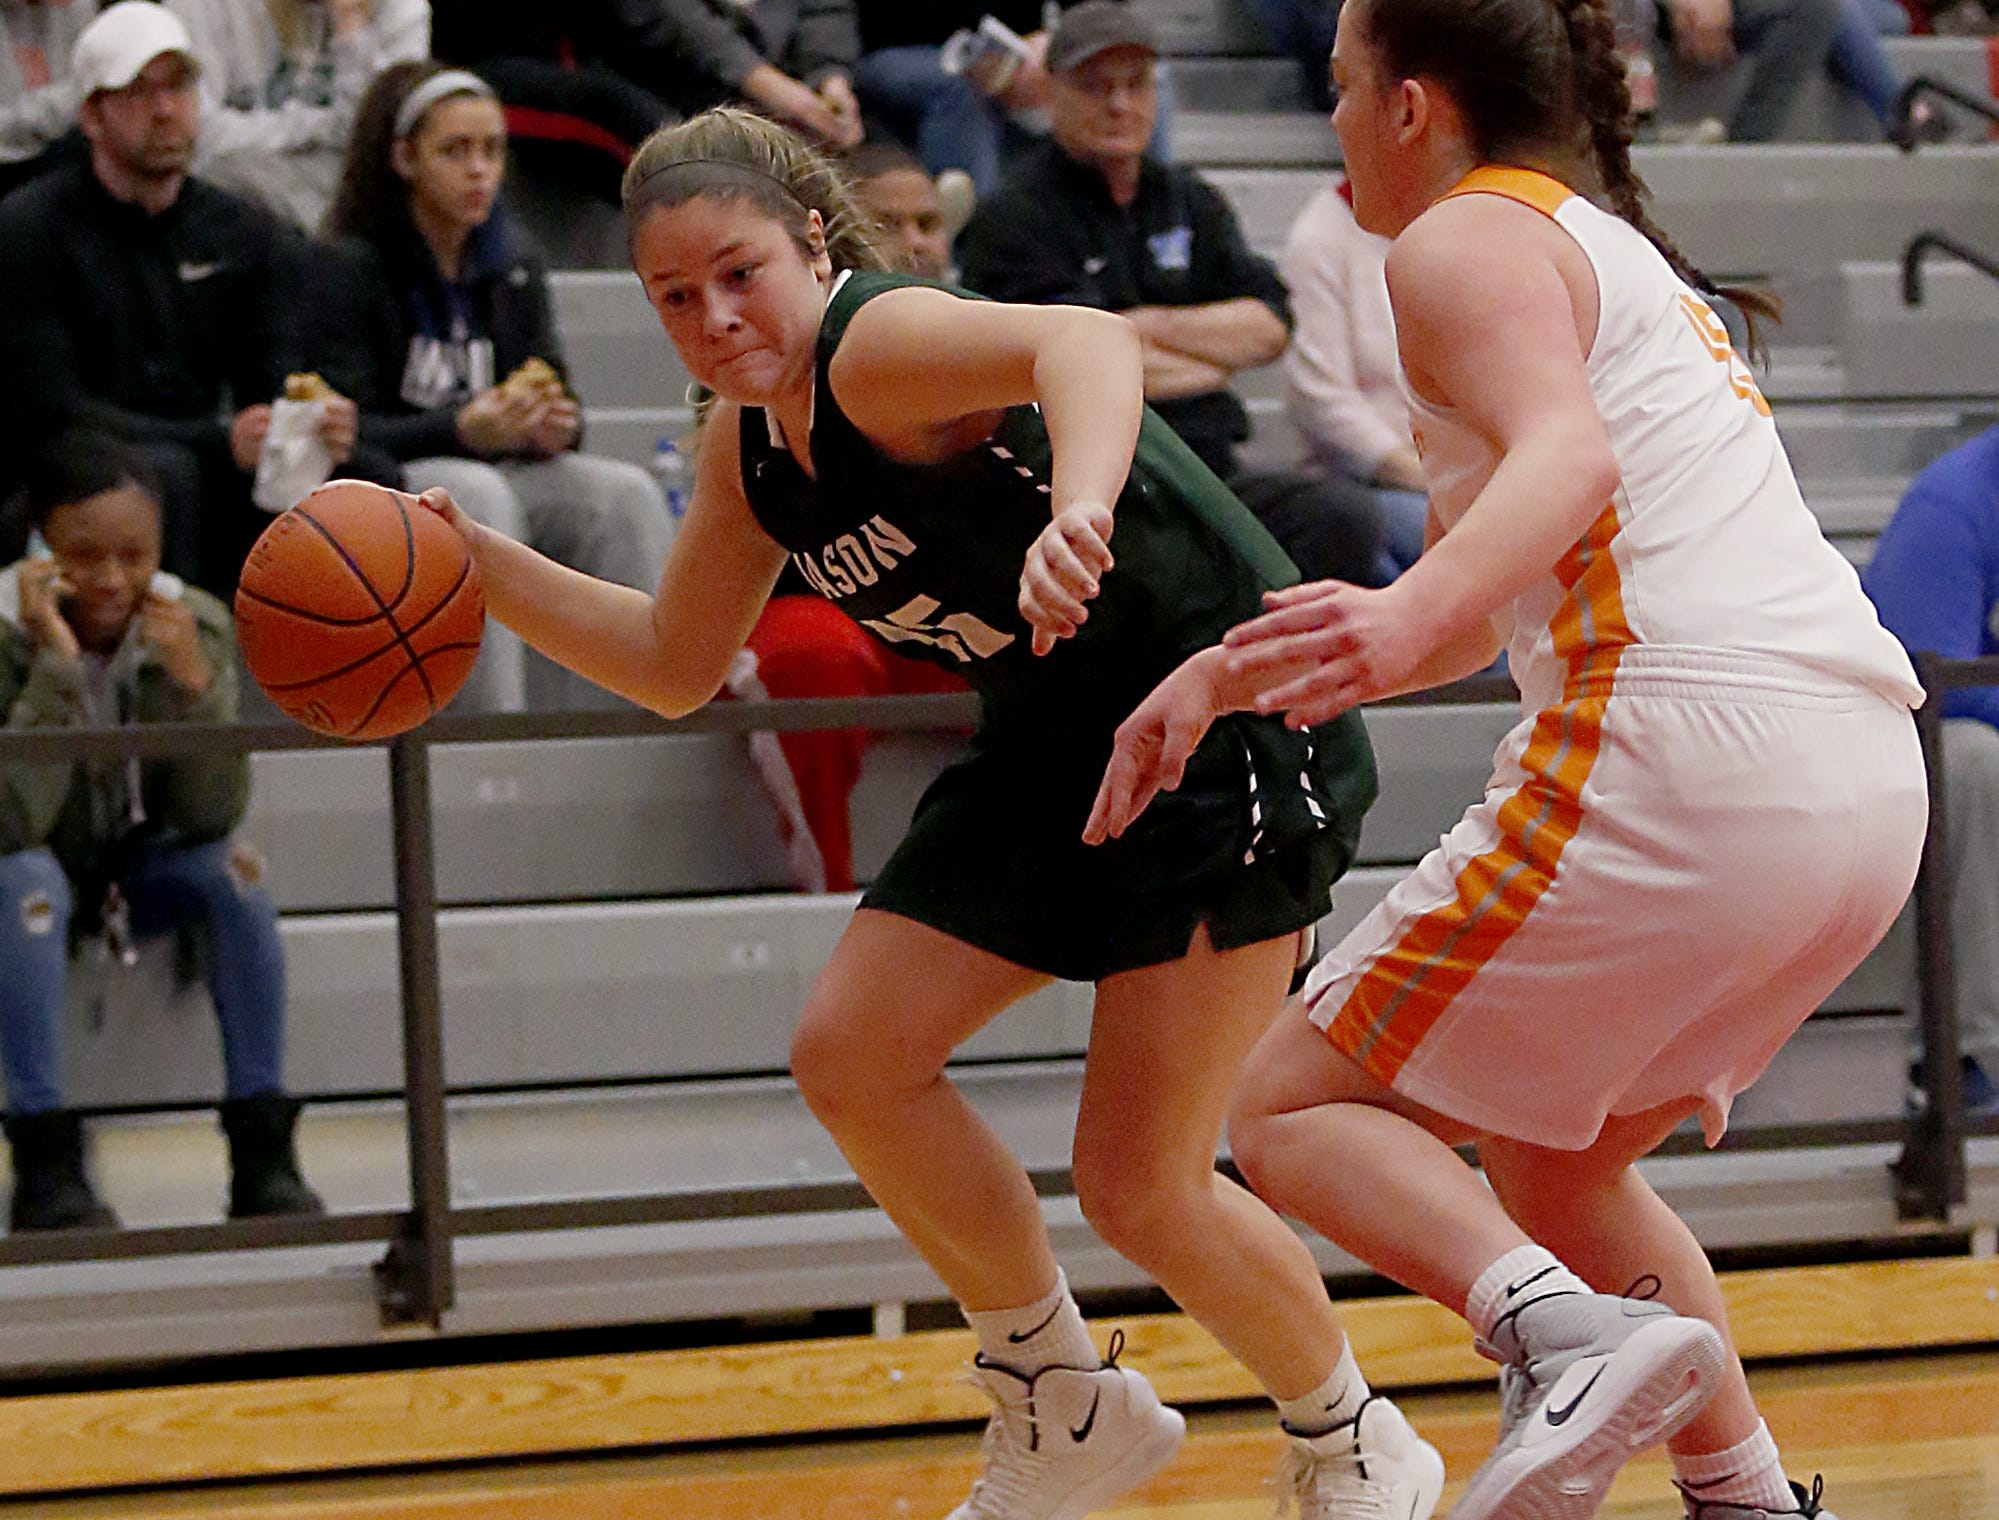 Mason's Beth Moser is covered by Mercy McAuley's Alexandria Smith during the Southwest District Girls Division I finals at Princeton High School in Cincinnati Saturday, March 2, 2019.